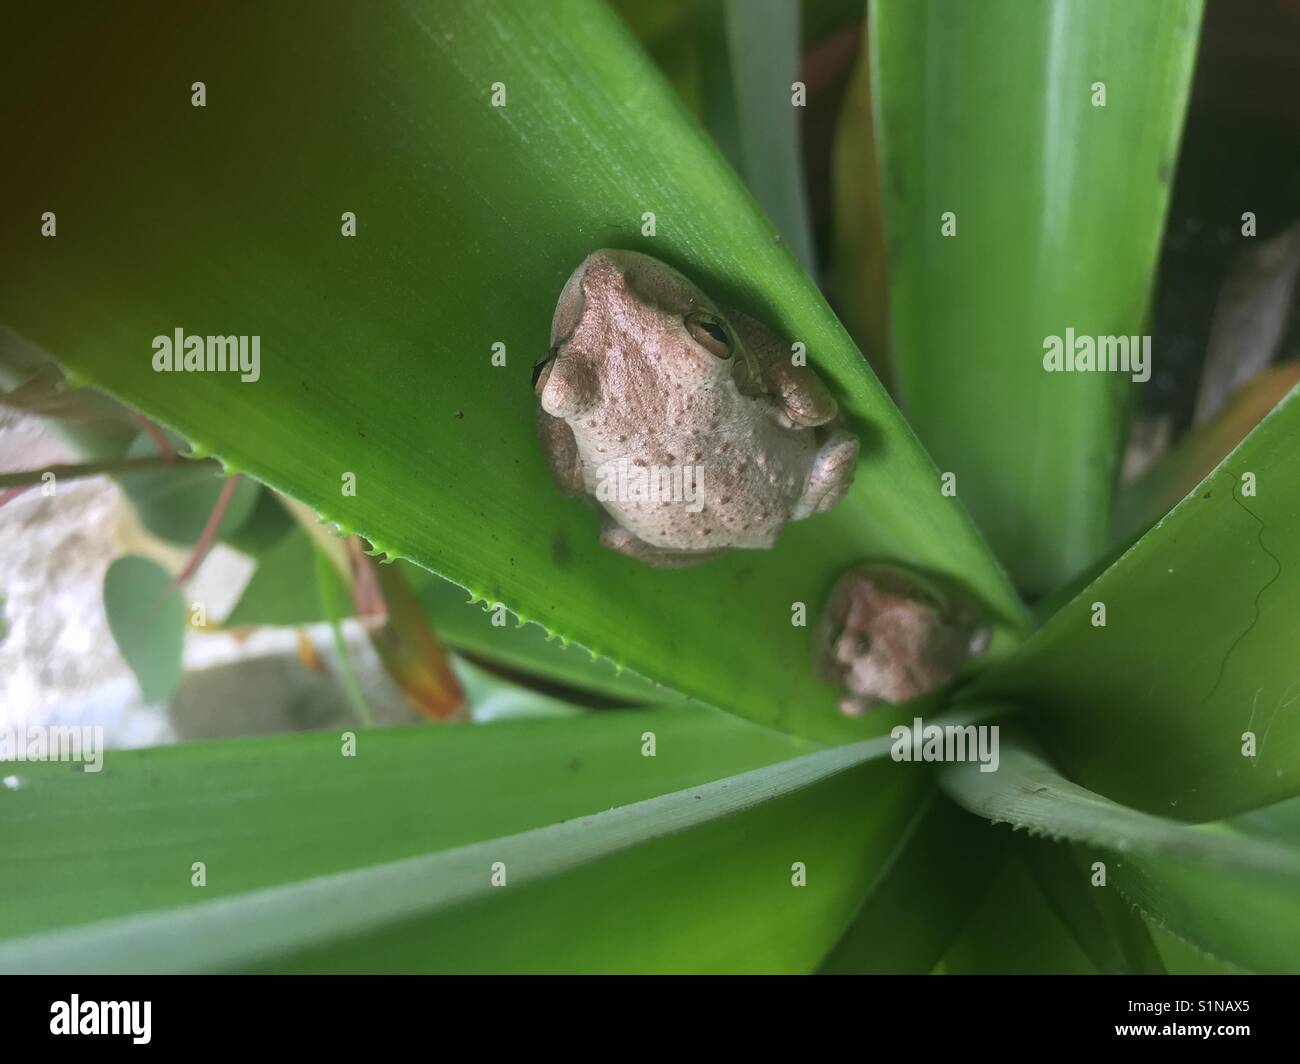 Two brown tree frogs in plant in St Thomas, USVI - Stock Image